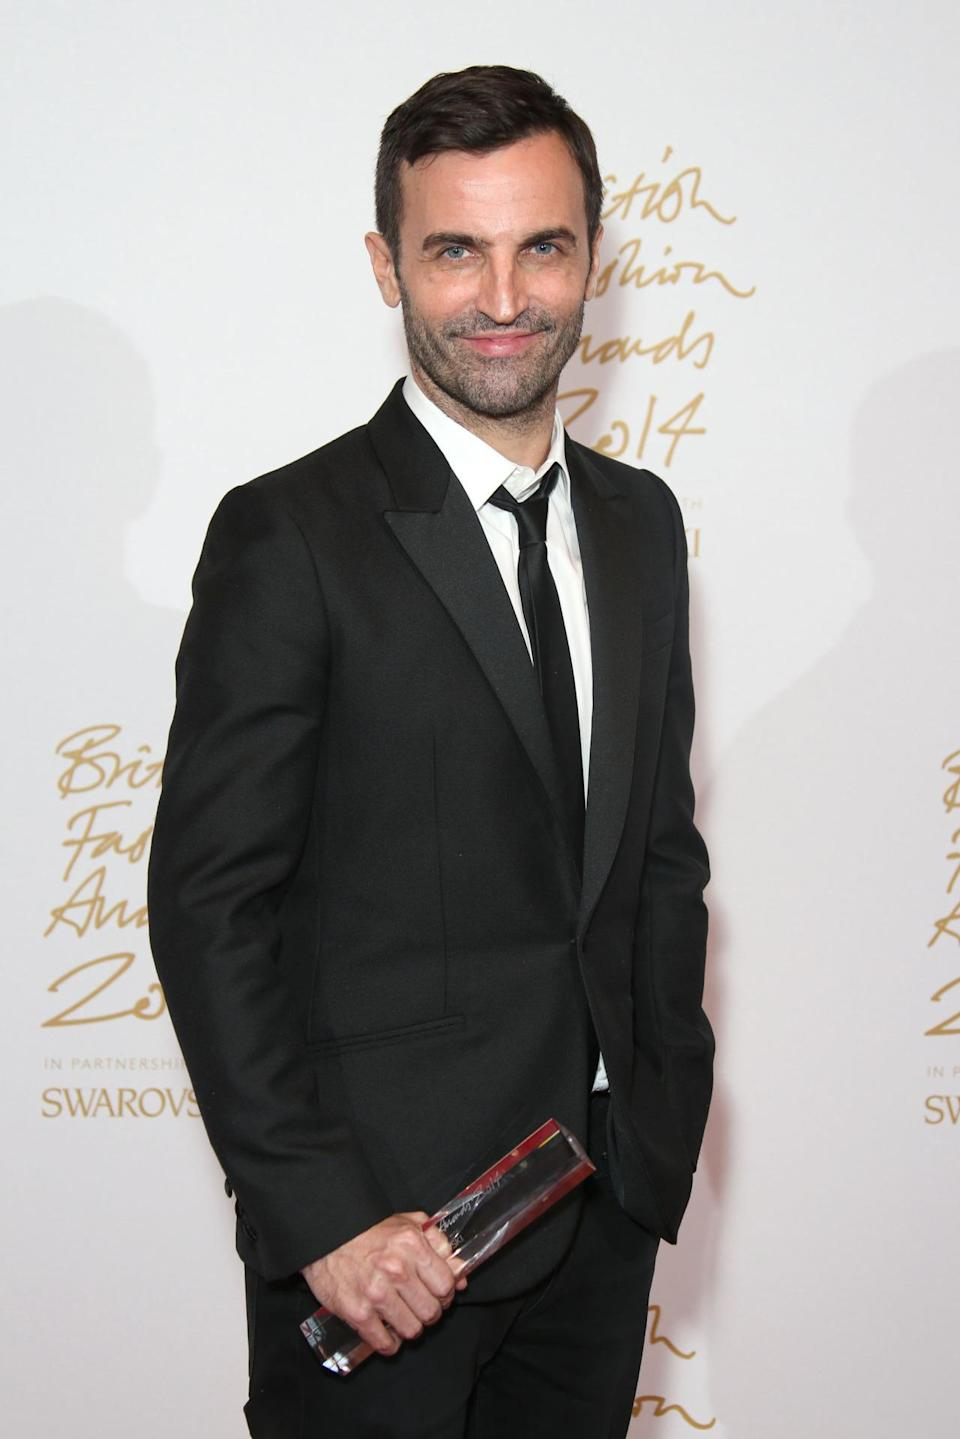 """""""I'm still discovering something everyday,"""" Nicolas Ghesquière, the winner of International Designer of the Year, revealed. The 43-year-old, who is the current creative director at Louis Vuitton, said that he draws inspiration not only from his travels all around the world but his peers as well including J.W. Anderson and Rei Kawakubo."""